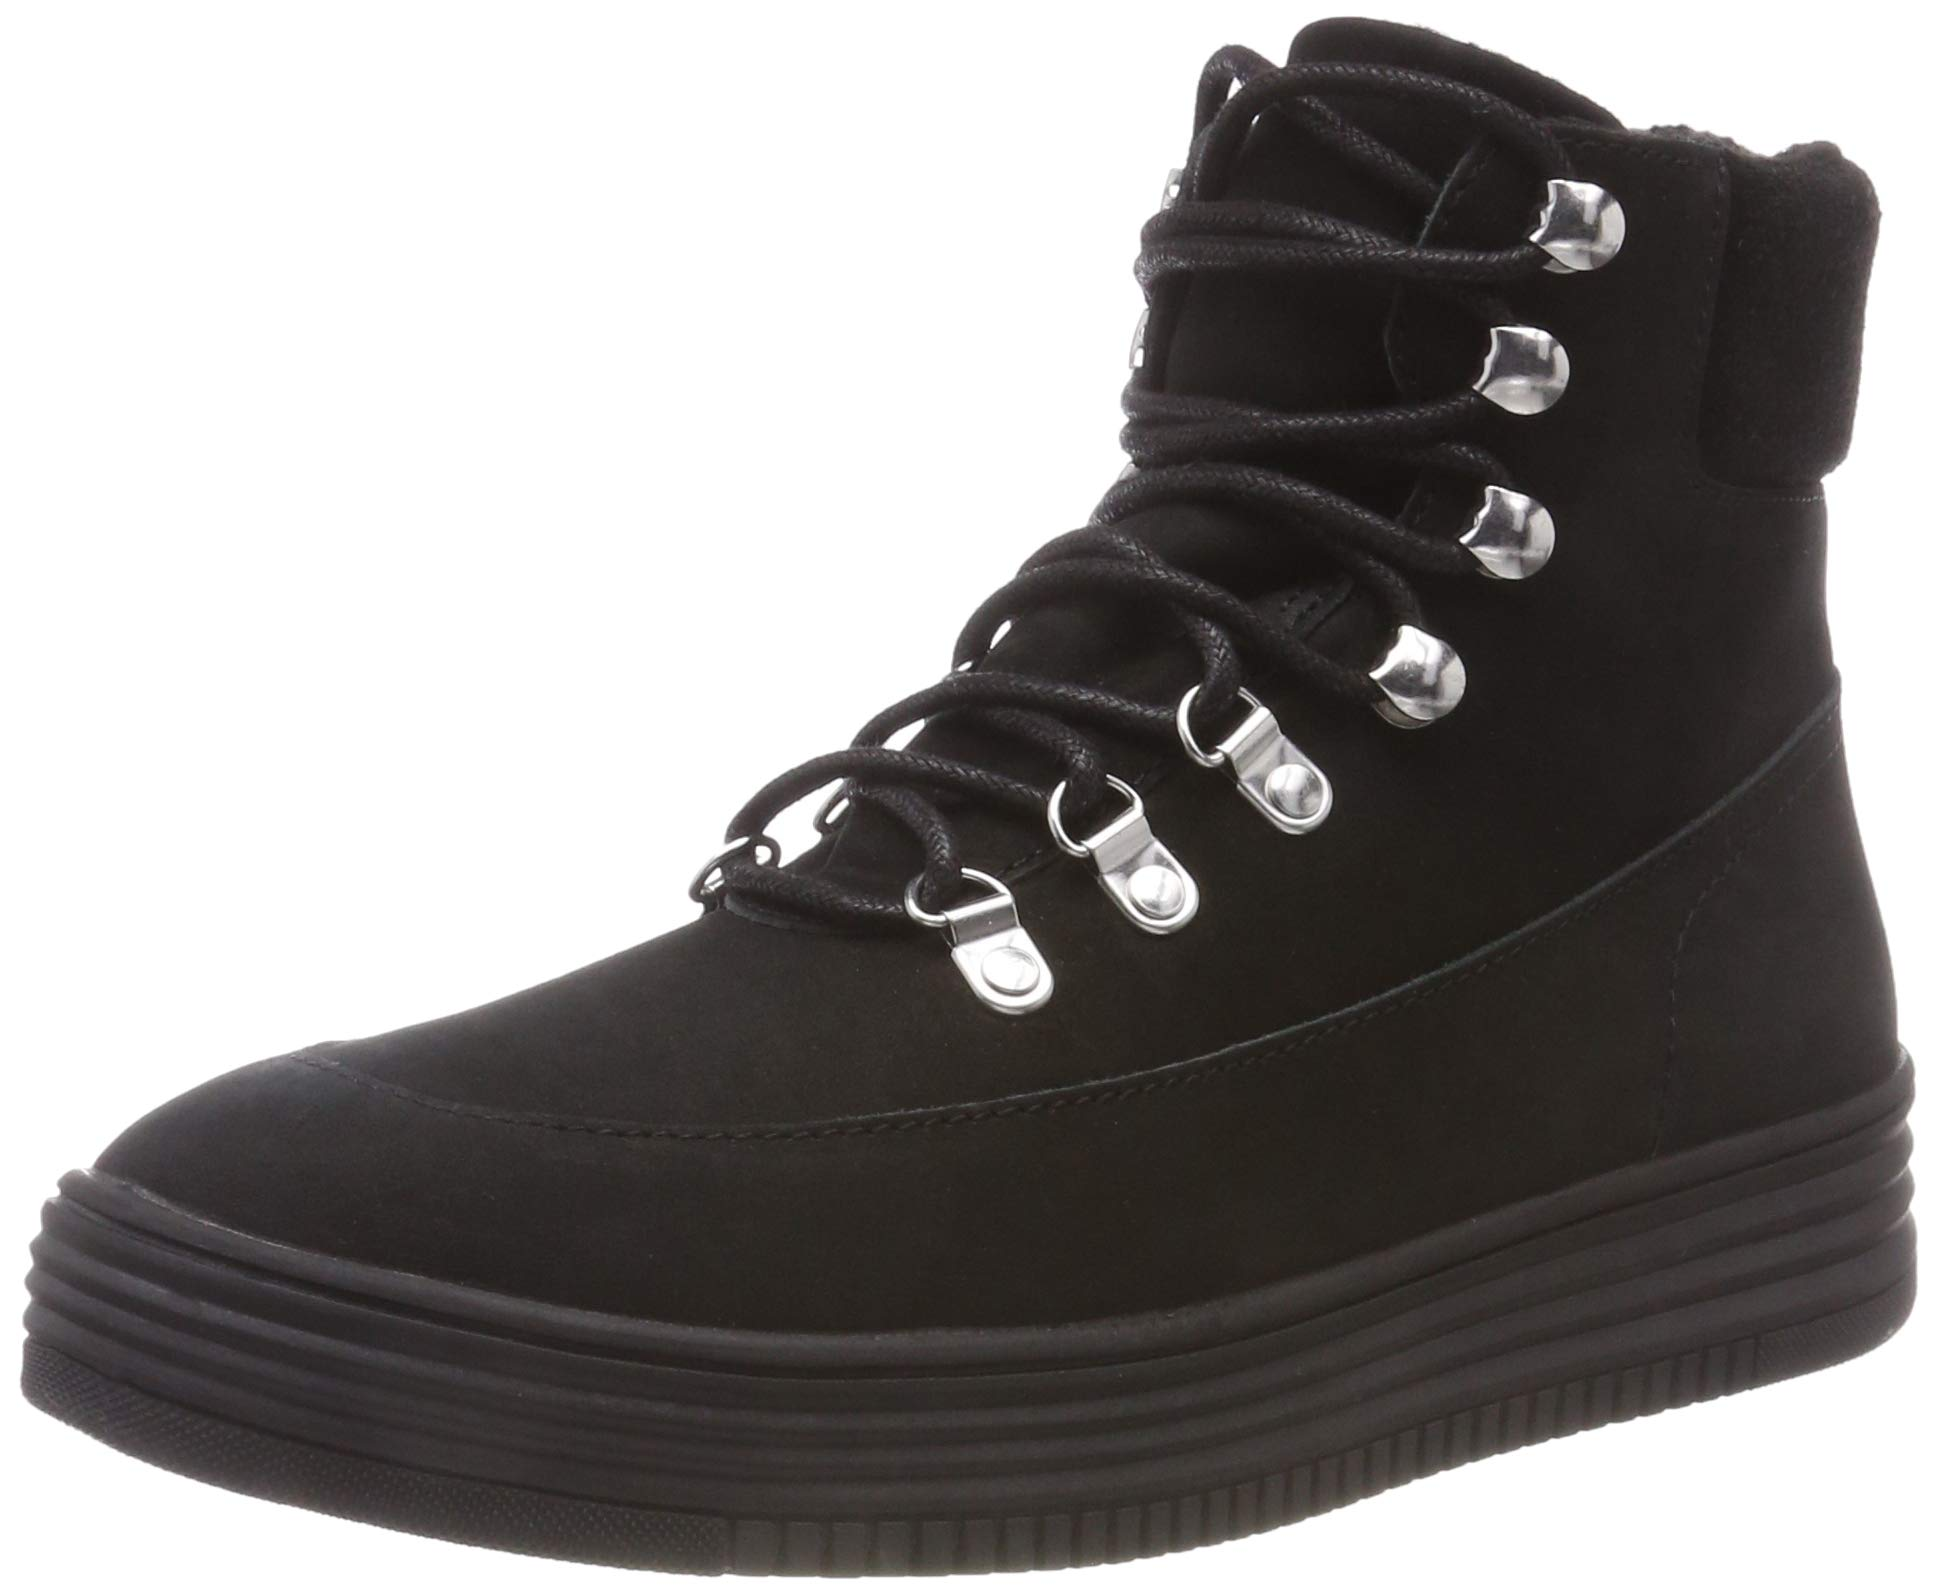 Warm BootBottines FemmeNoirblack 10237 Bianco Eu Hiking FJT1clK